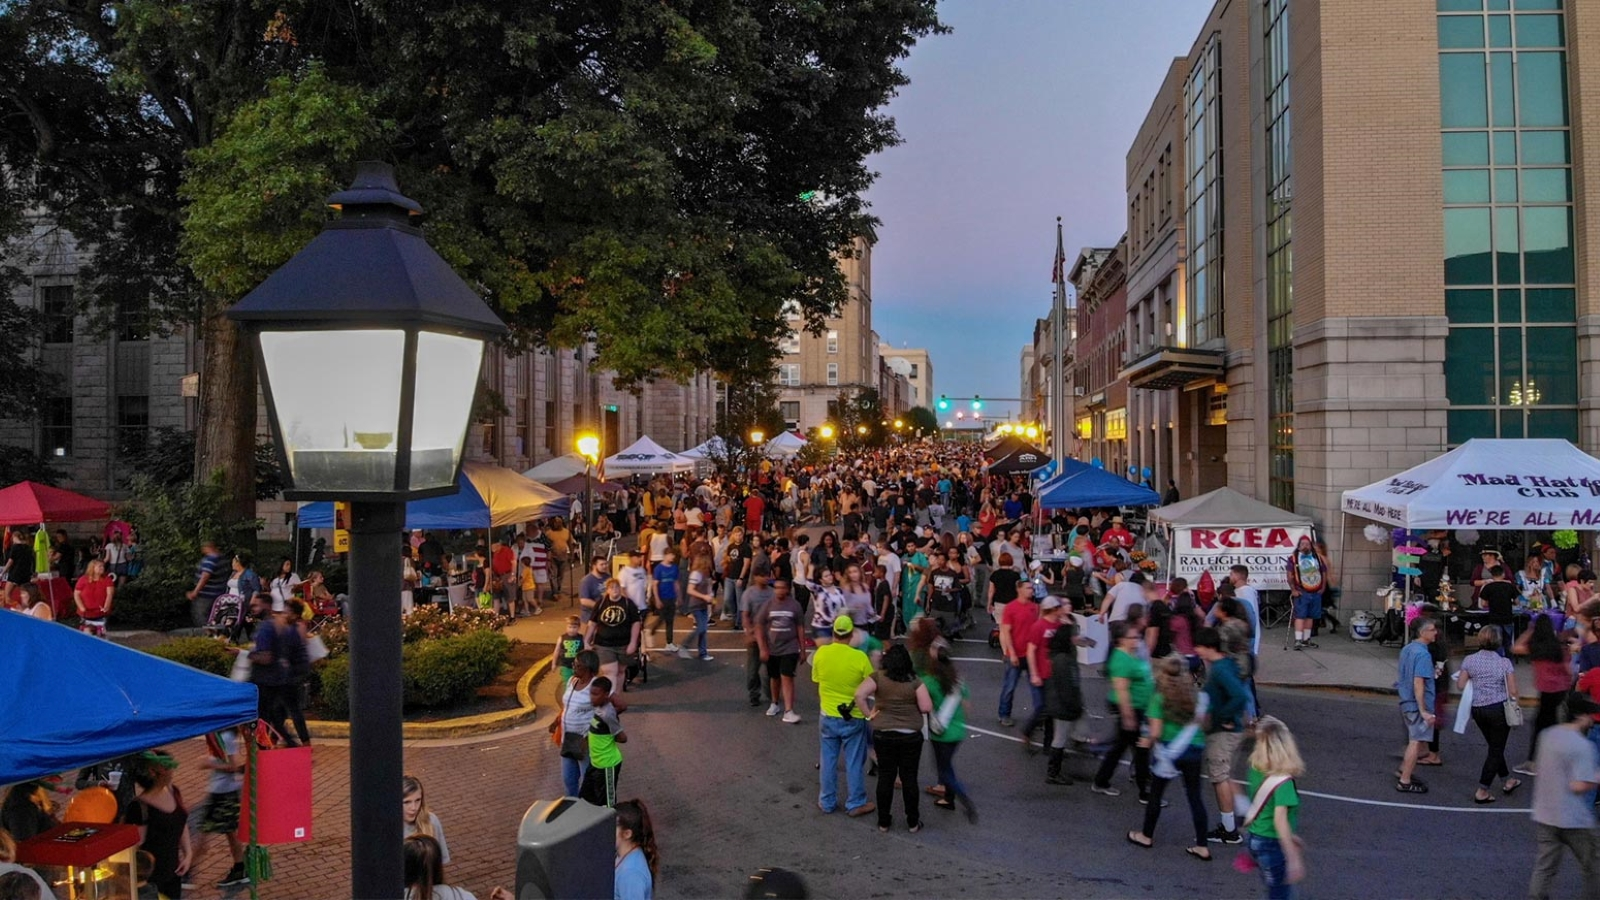 Beckley downtown during a festival at dusk with the streets filled with stands and people